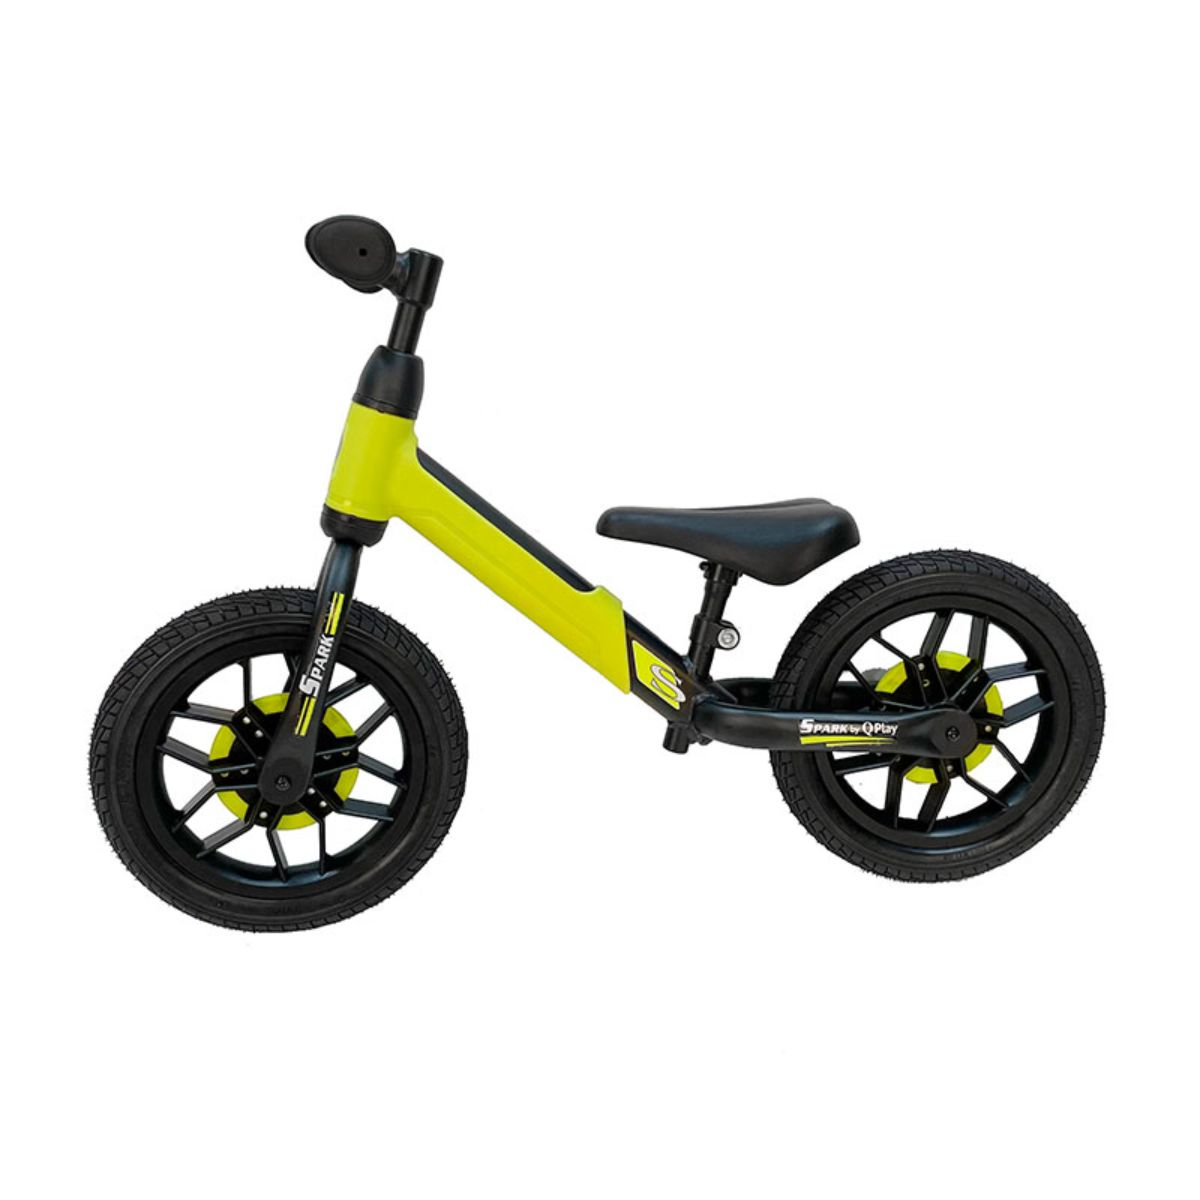 Bicicleta fara pedale DHS Baby Qplay Spark, Verde, 12 inch